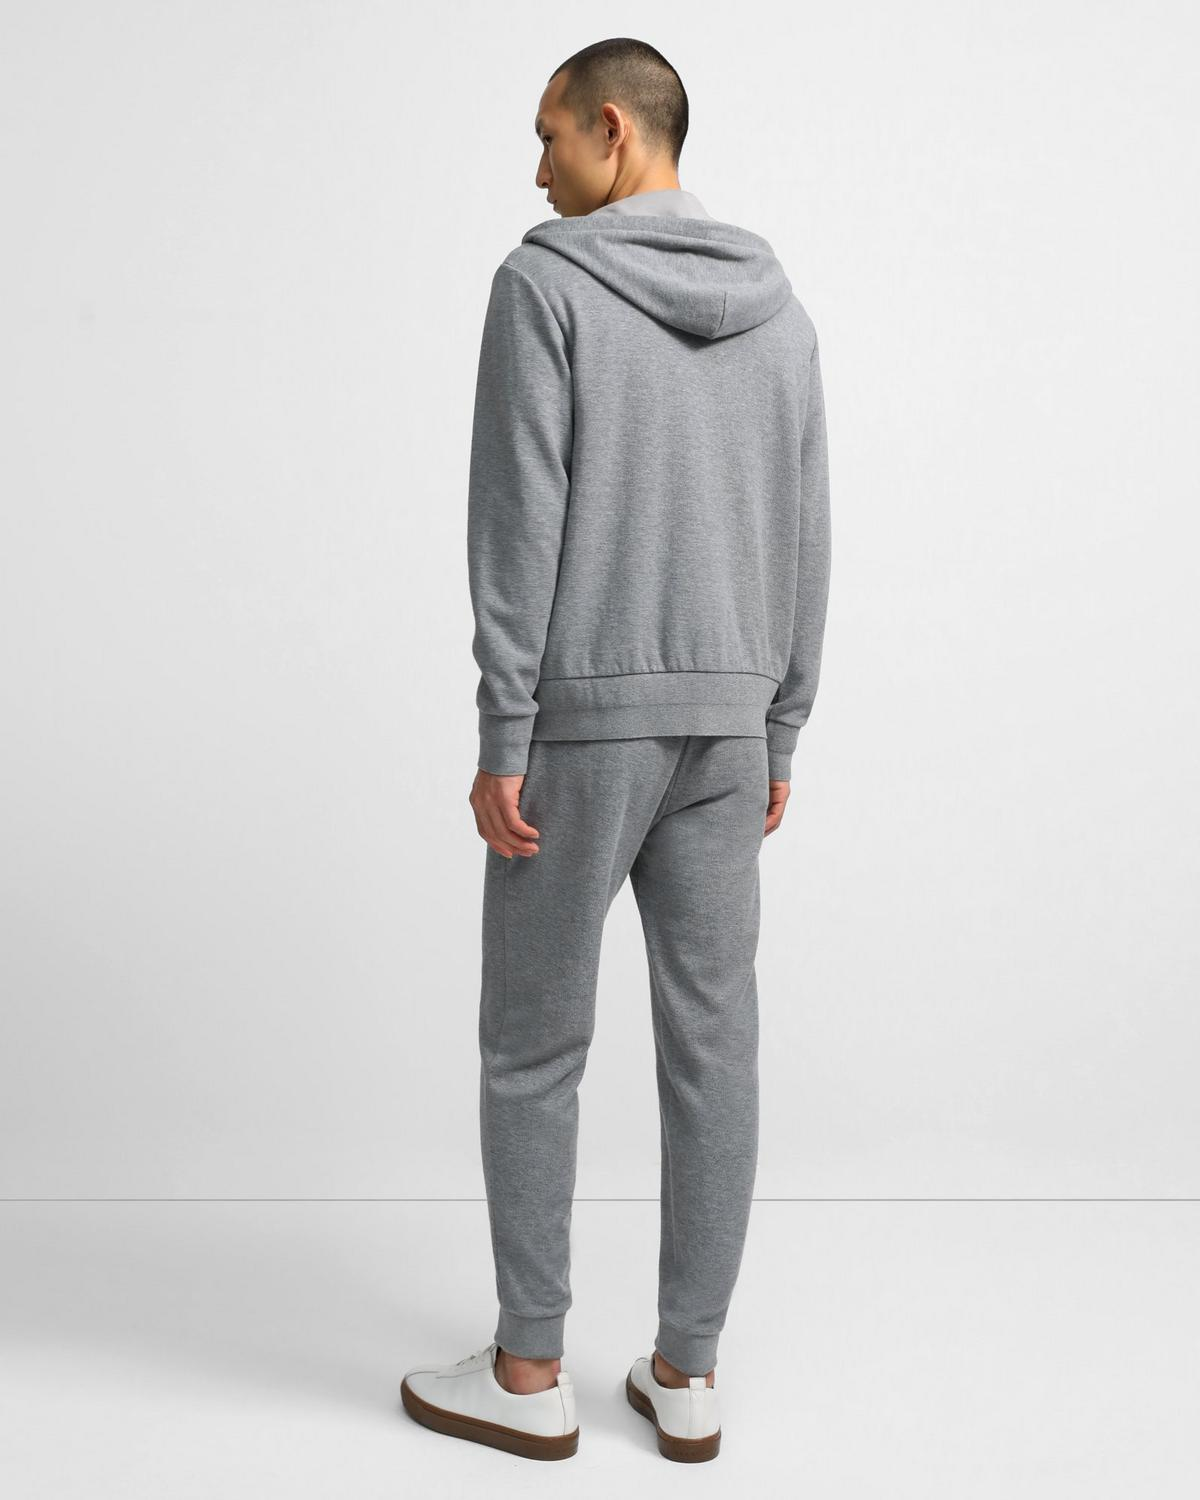 Zip Hoodie in Waffle Knit Organic Cotton